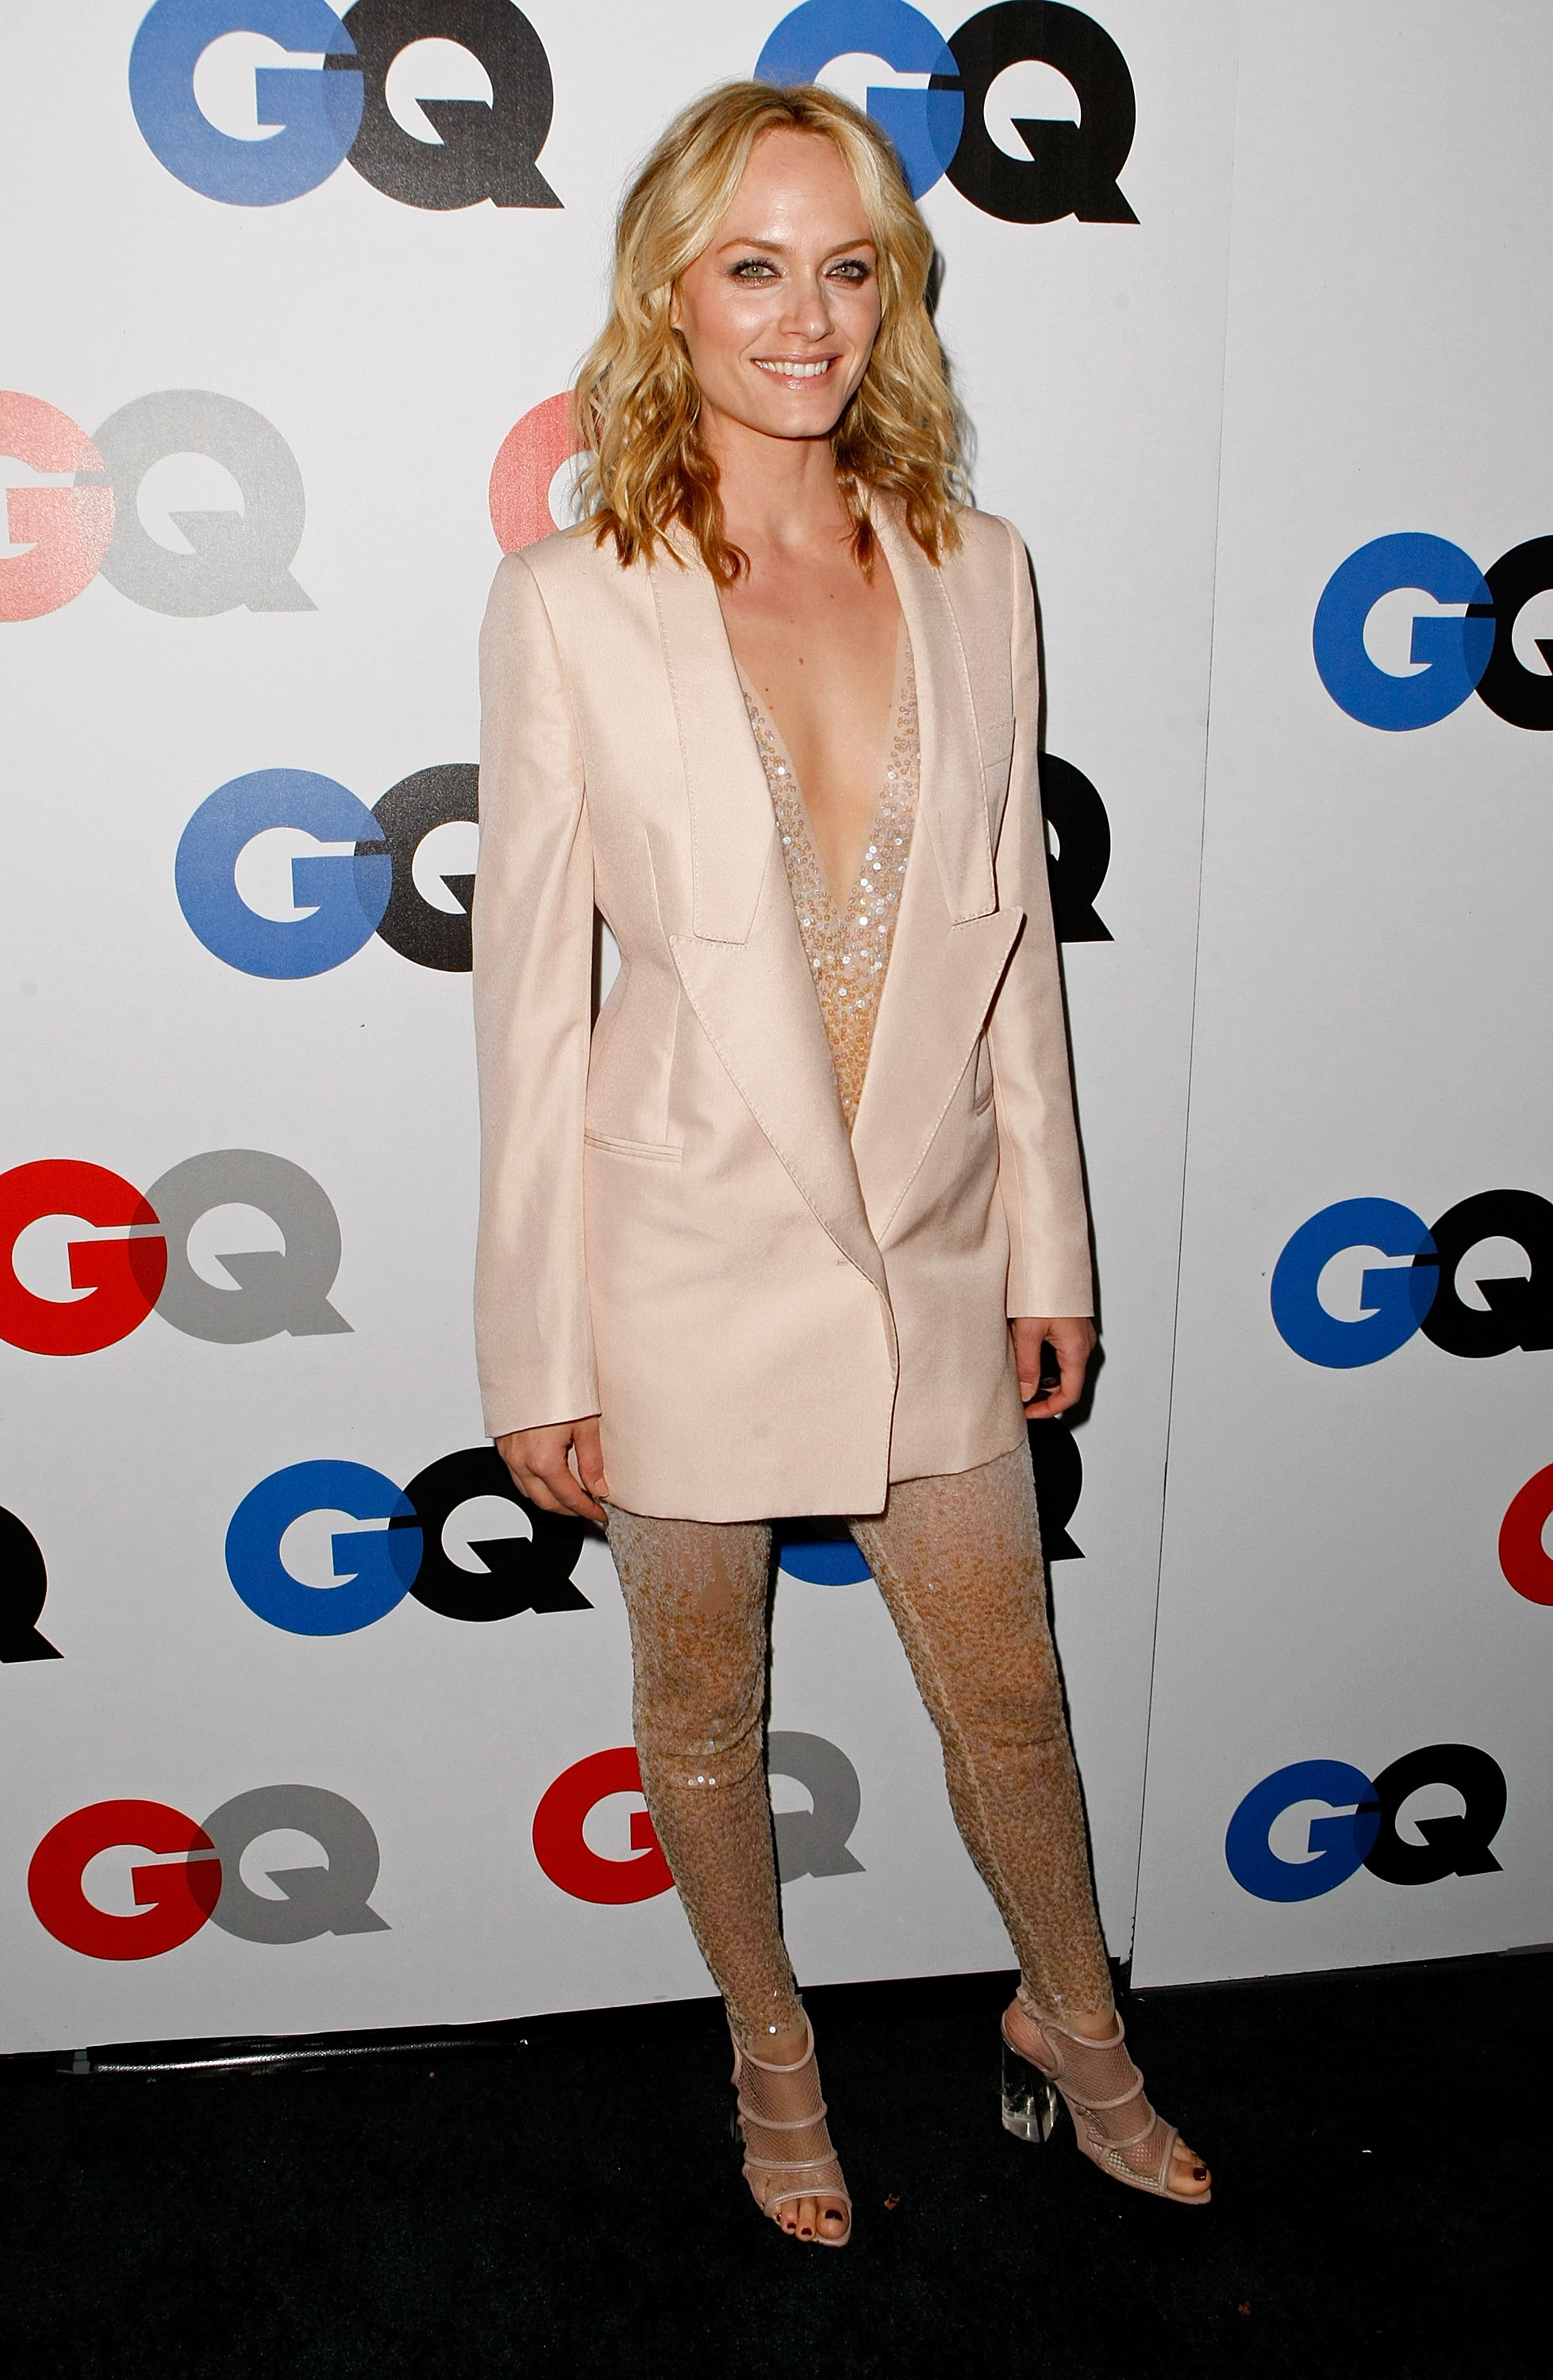 96544_Celebutopia-Amber_Valletta-GQ_Men_of_the_Year_party-03_122_1020lo.jpg